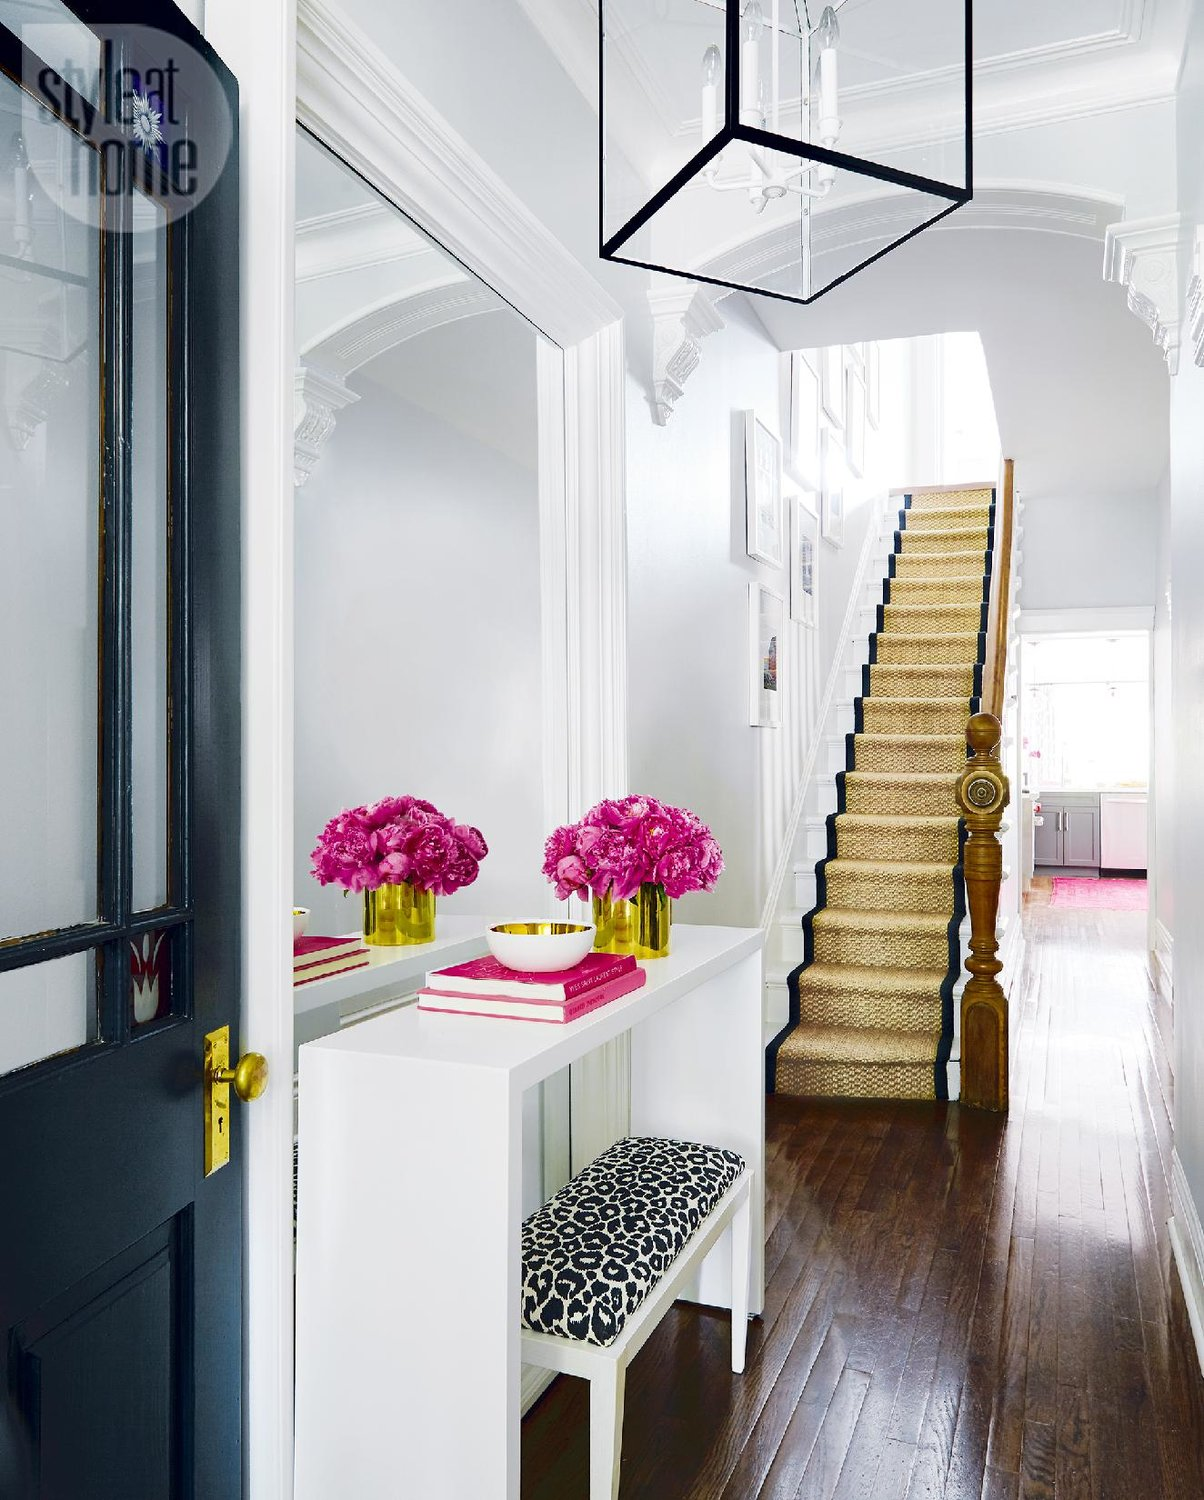 Hallway Entry Decorating Ideas: 5 Ways To Decorate A Narrow Hallway